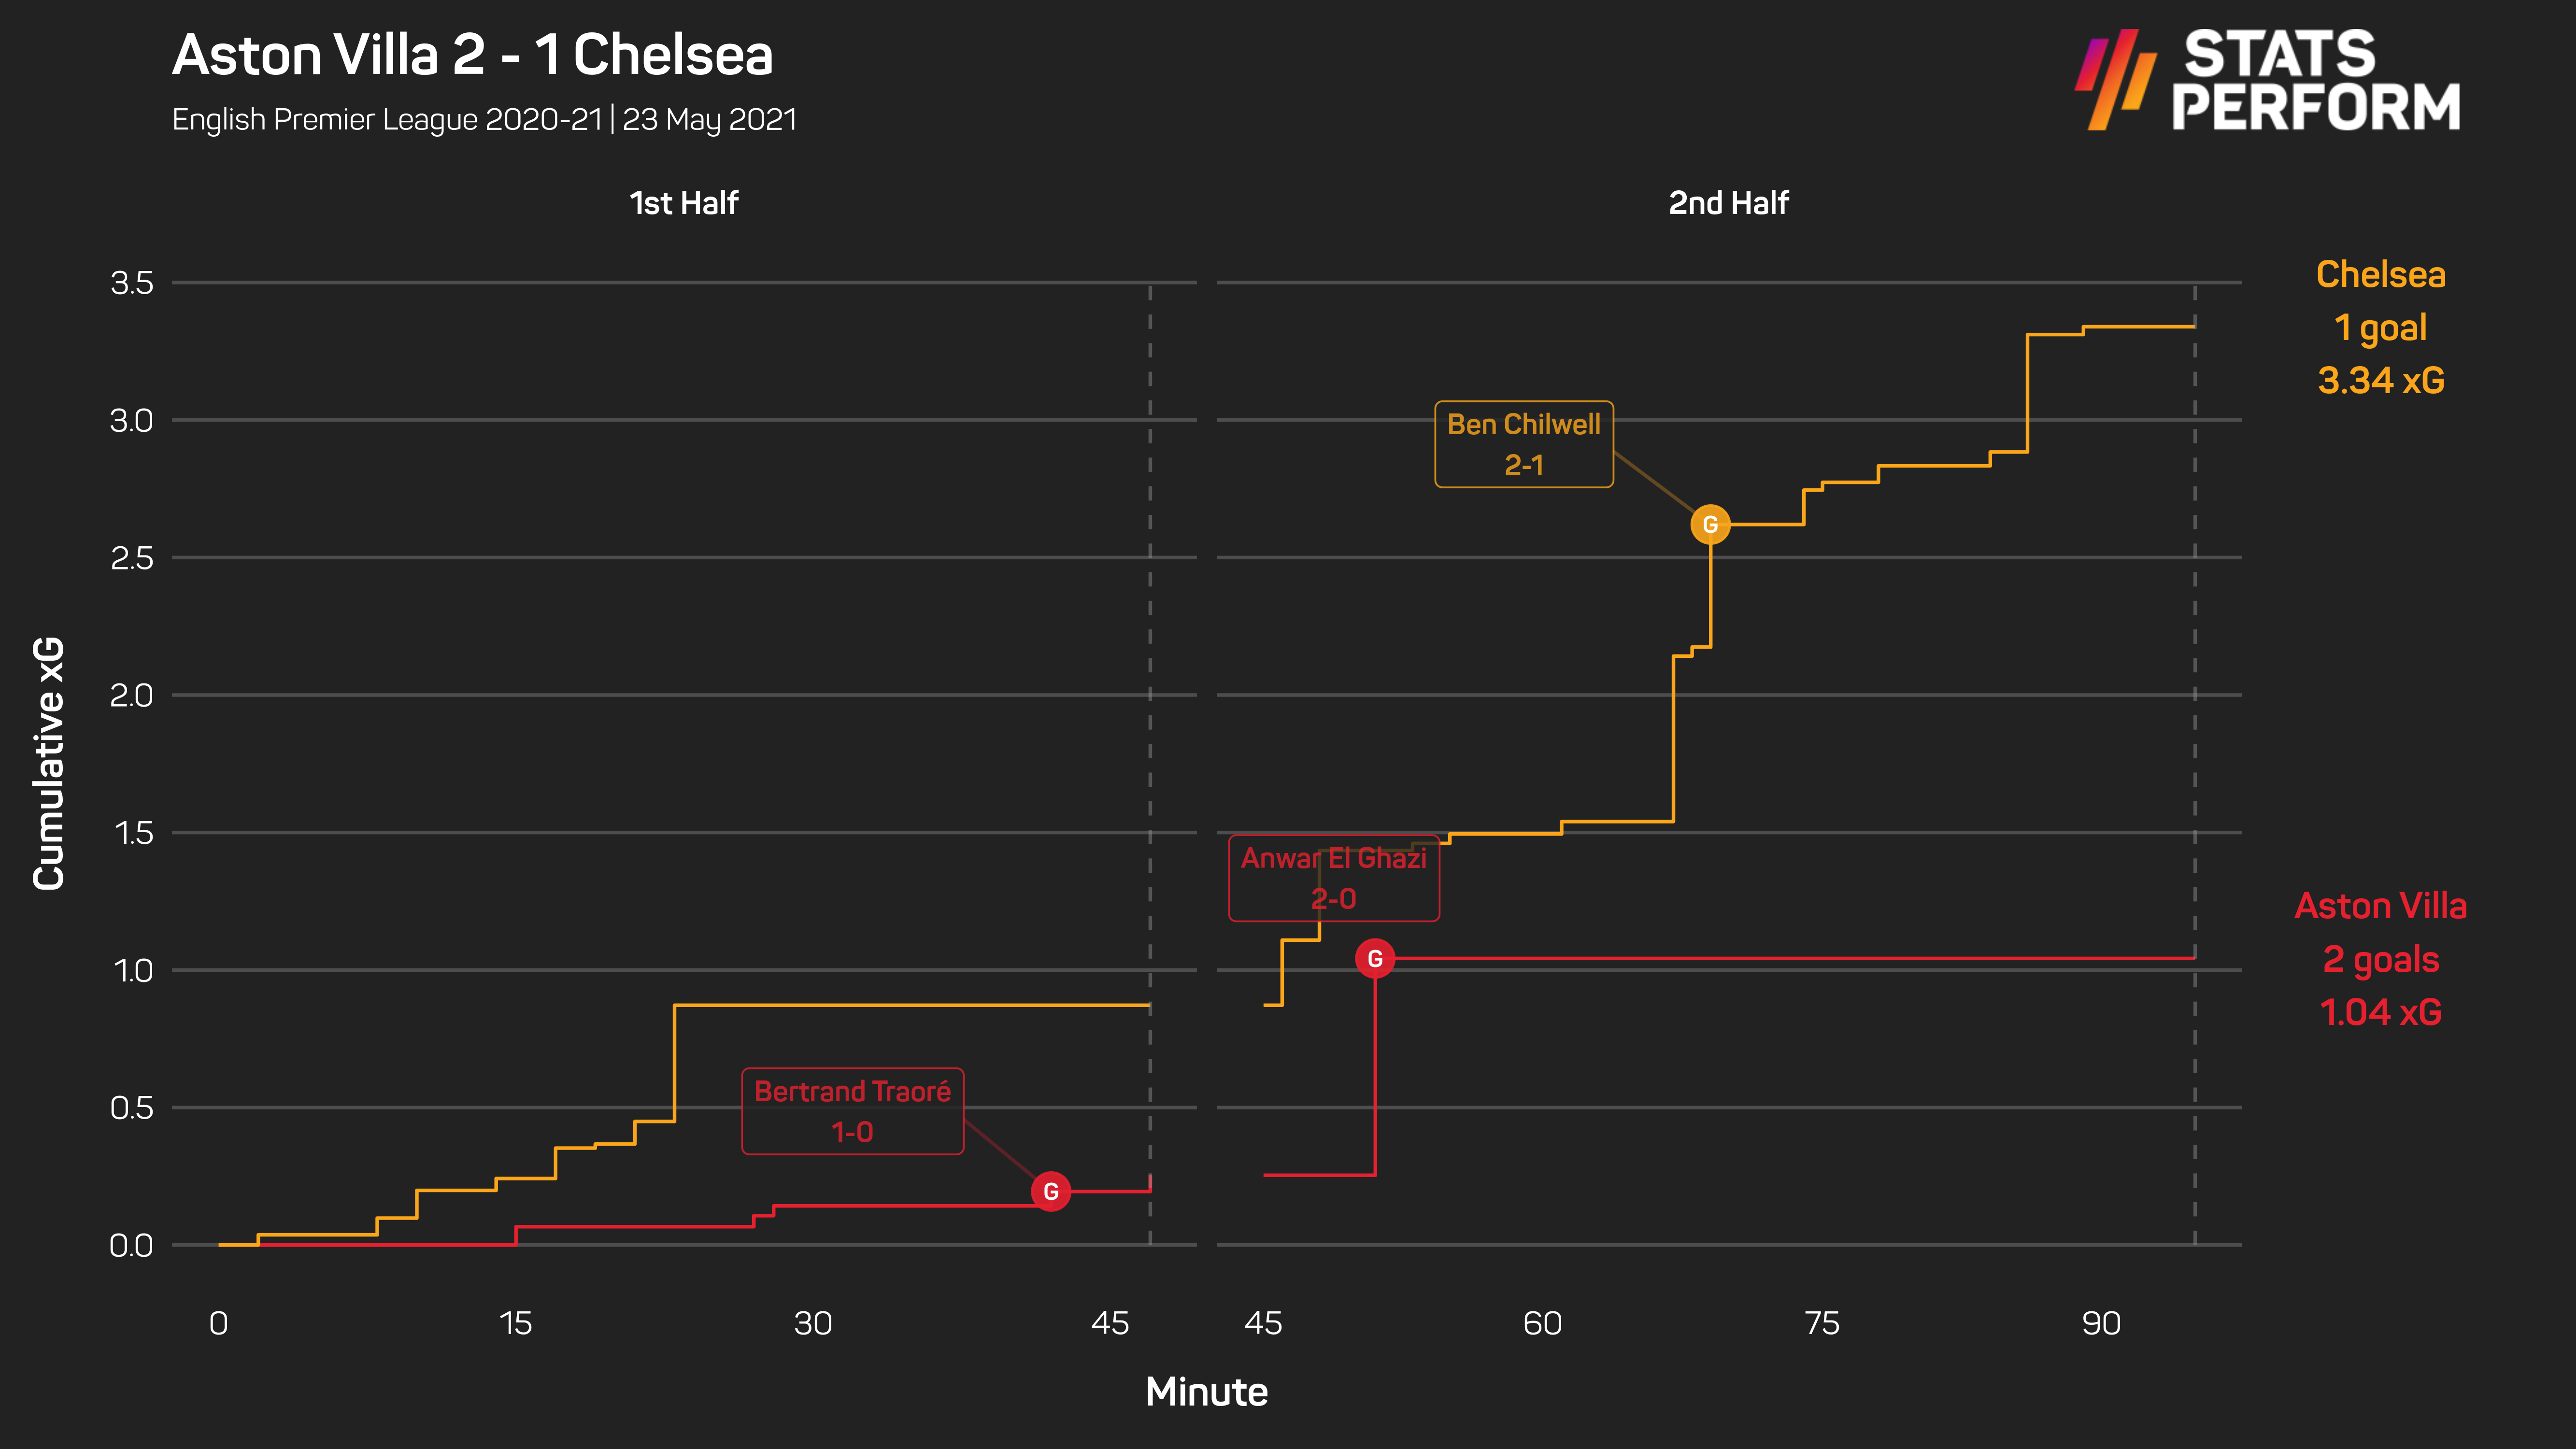 Chelsea scored just once from 3.3 expected goals, highlighting their wastefulness